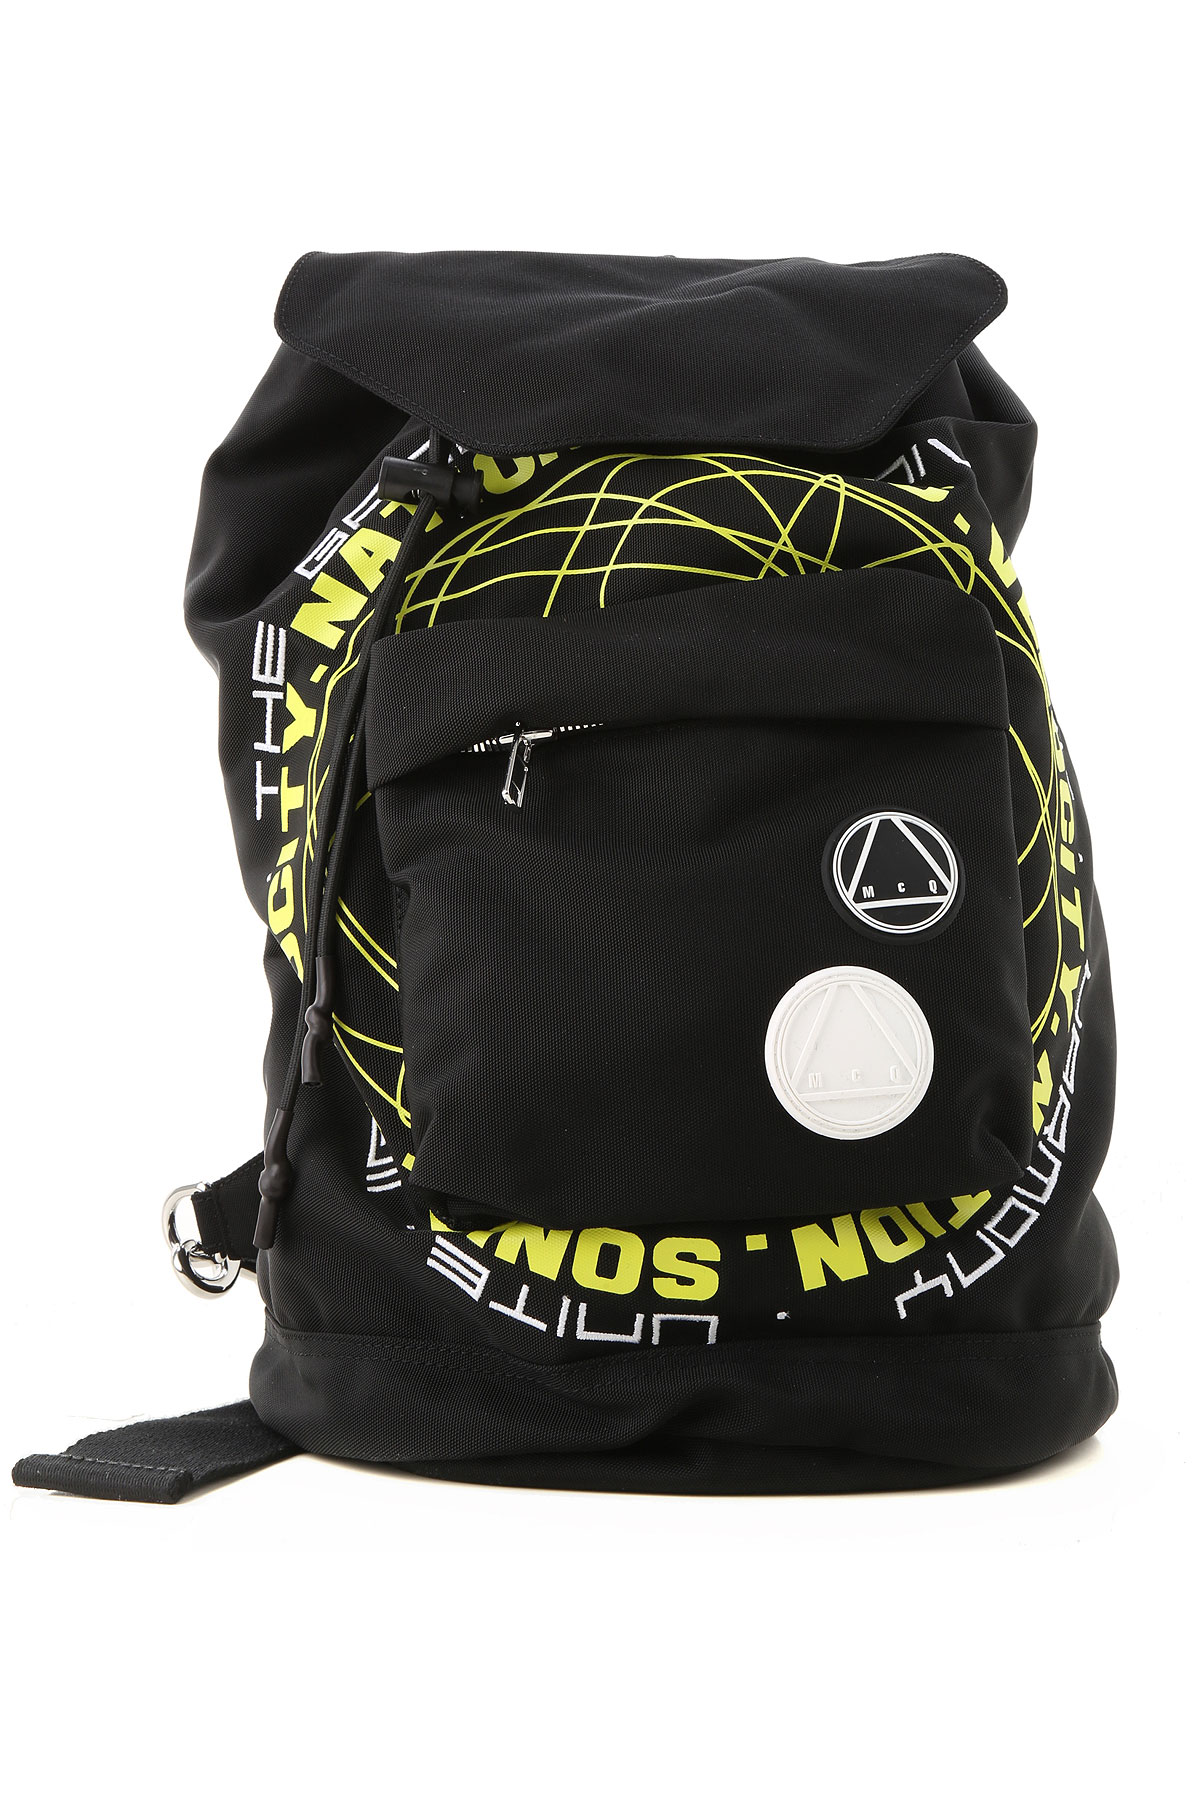 Alexander McQueen McQ Backpack for Men On Sale, Black, Fabric, 2019